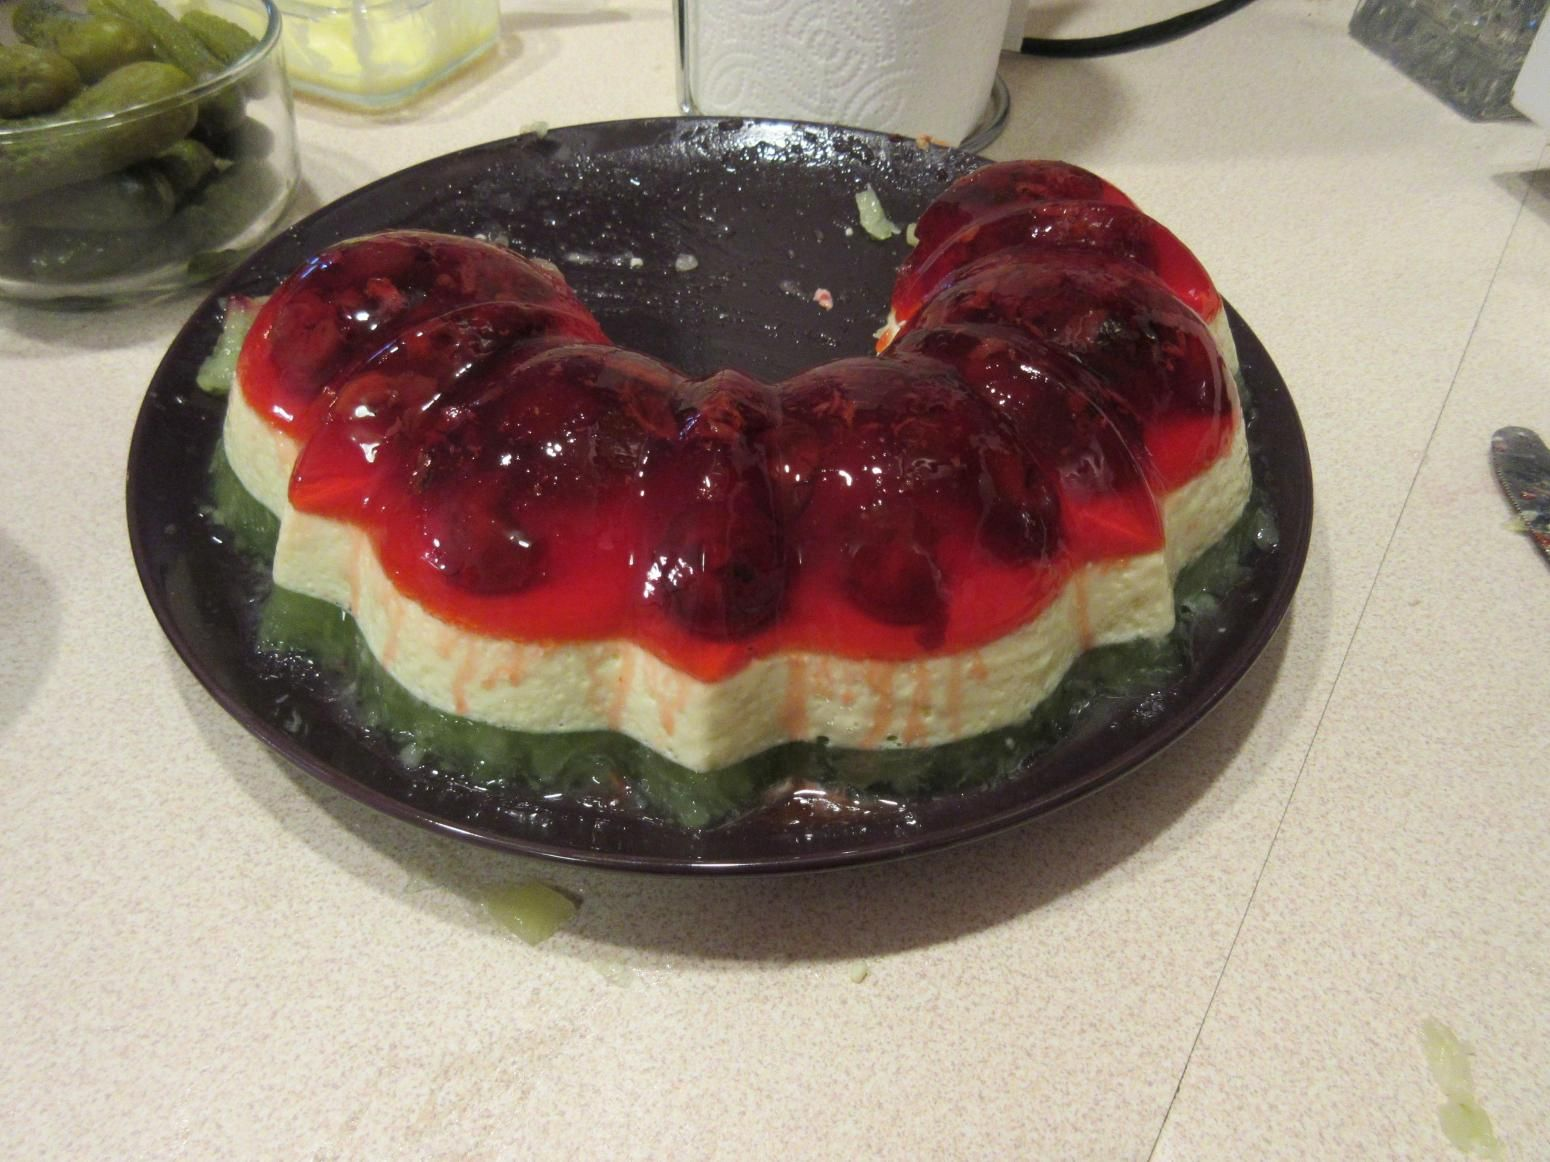 Italian Christmas Jello Mold Ring Recipe Jello Mold Recipes Jello Dessert Recipes Jello Recipes